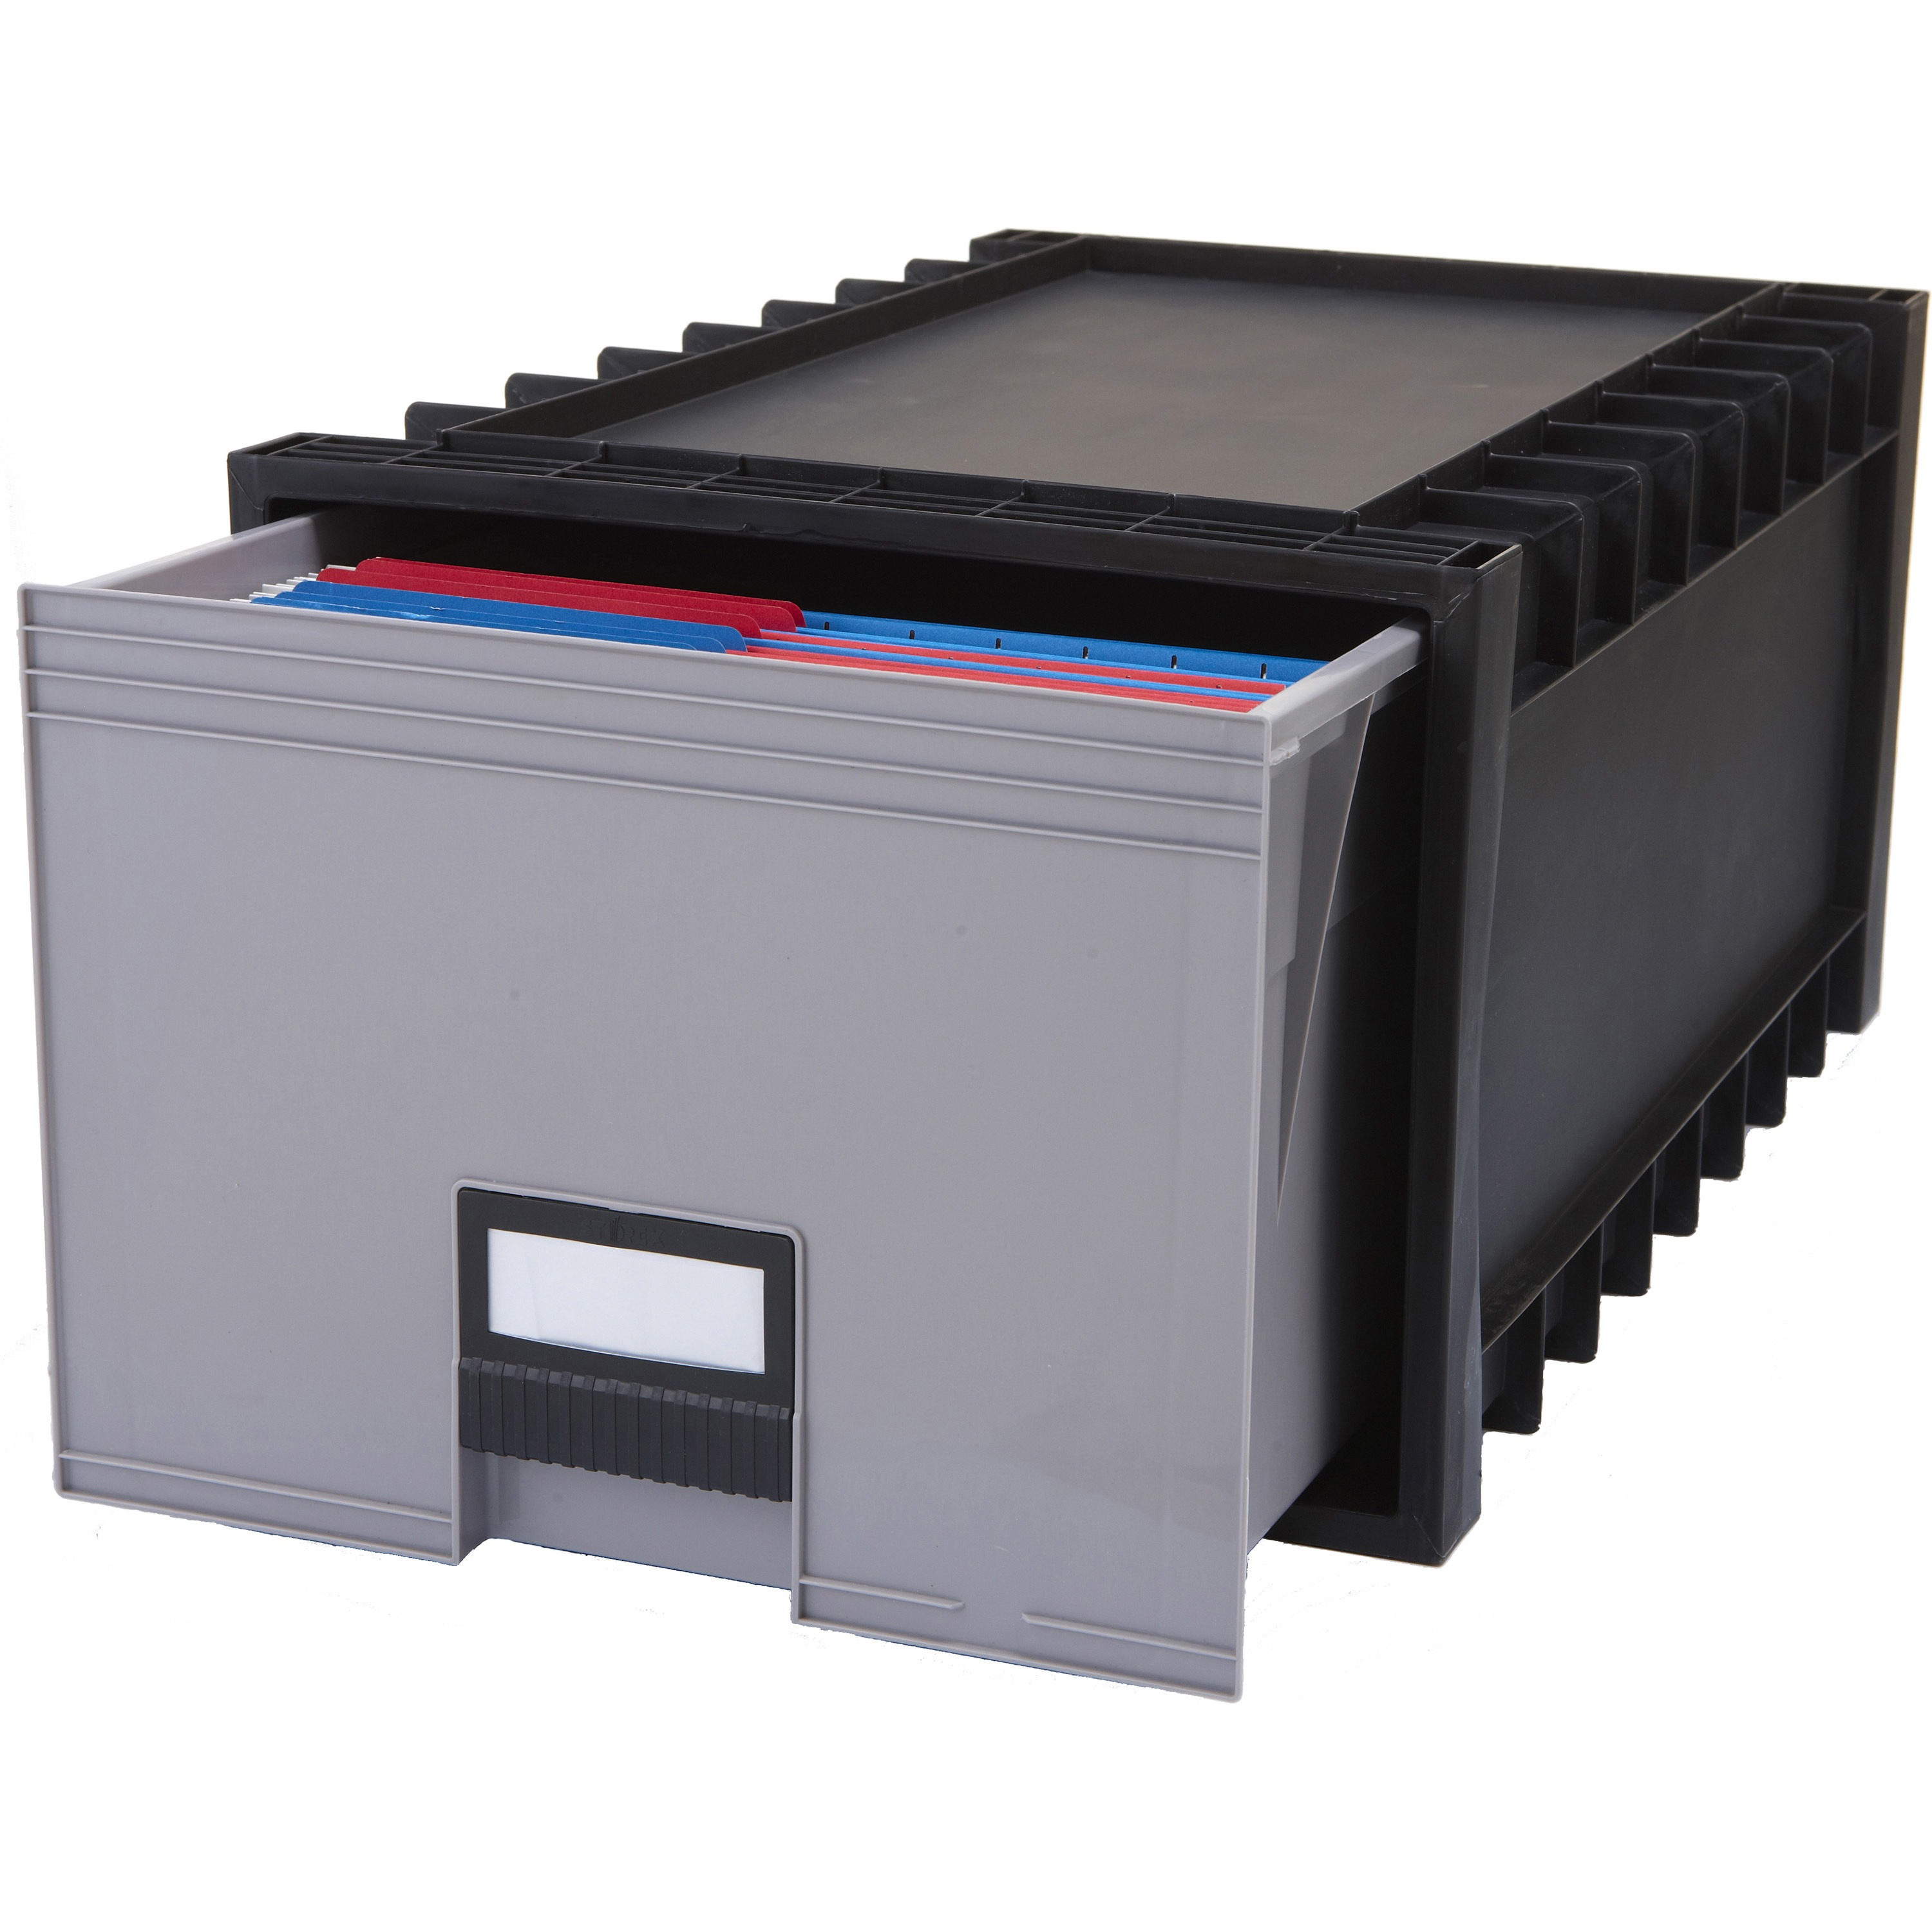 Storex Archive Files Storage Box